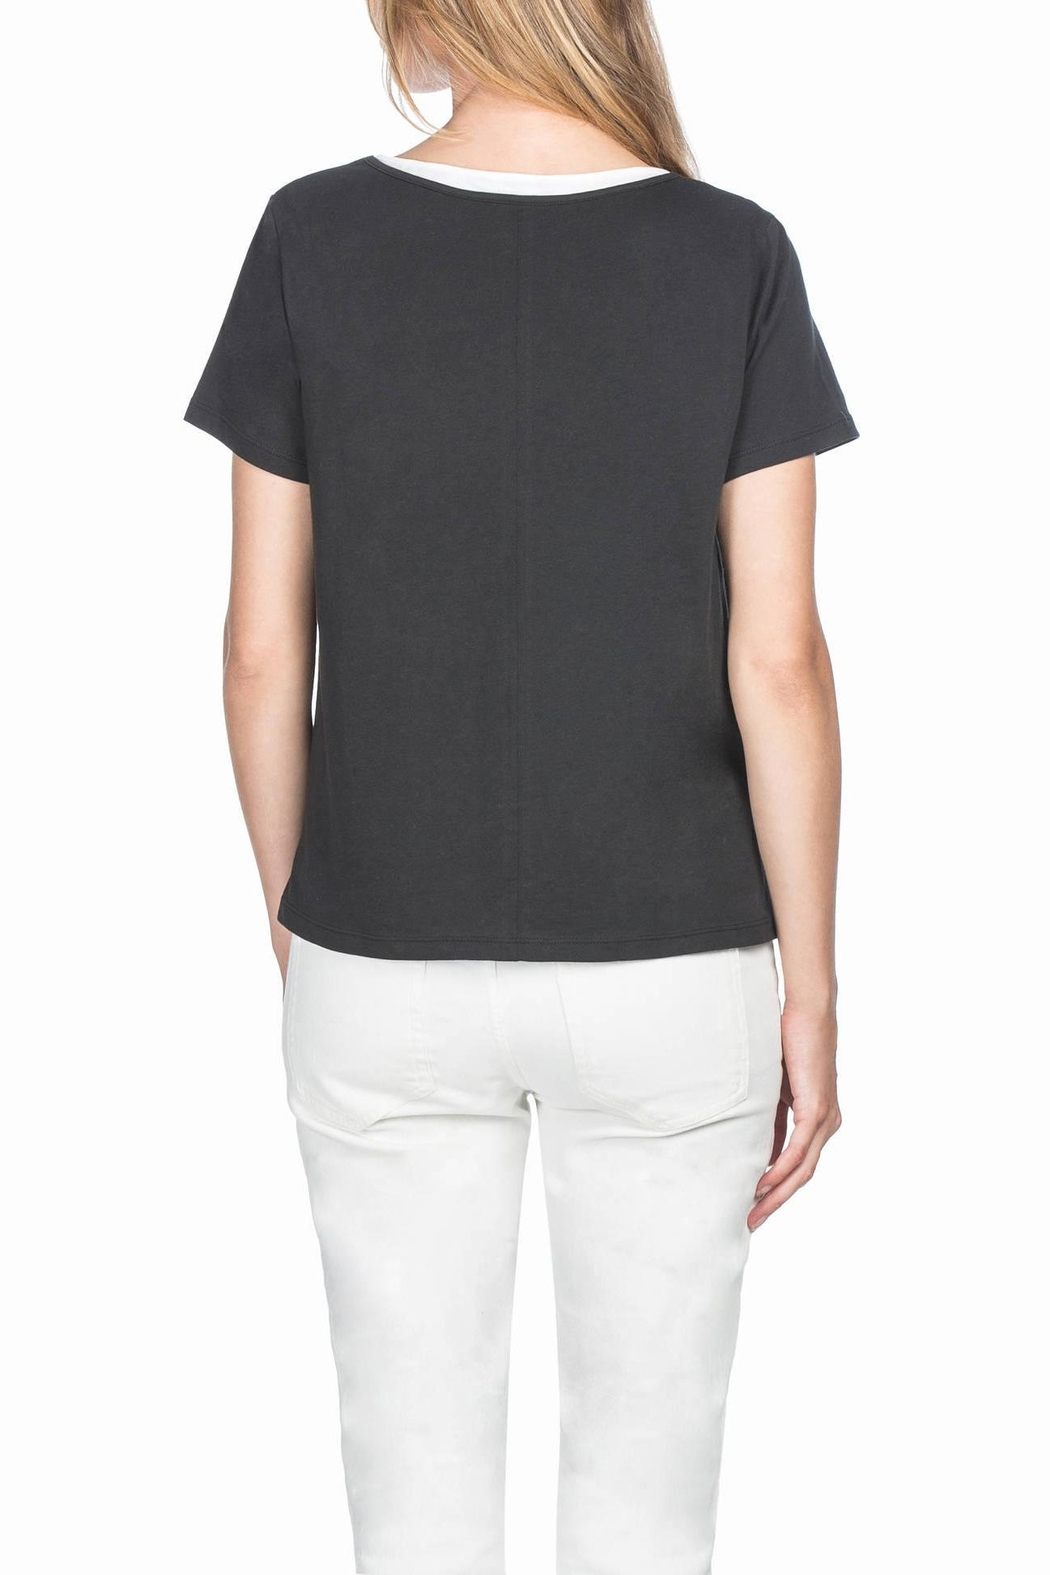 Lilla P Double Layer Tee - Front Full Image